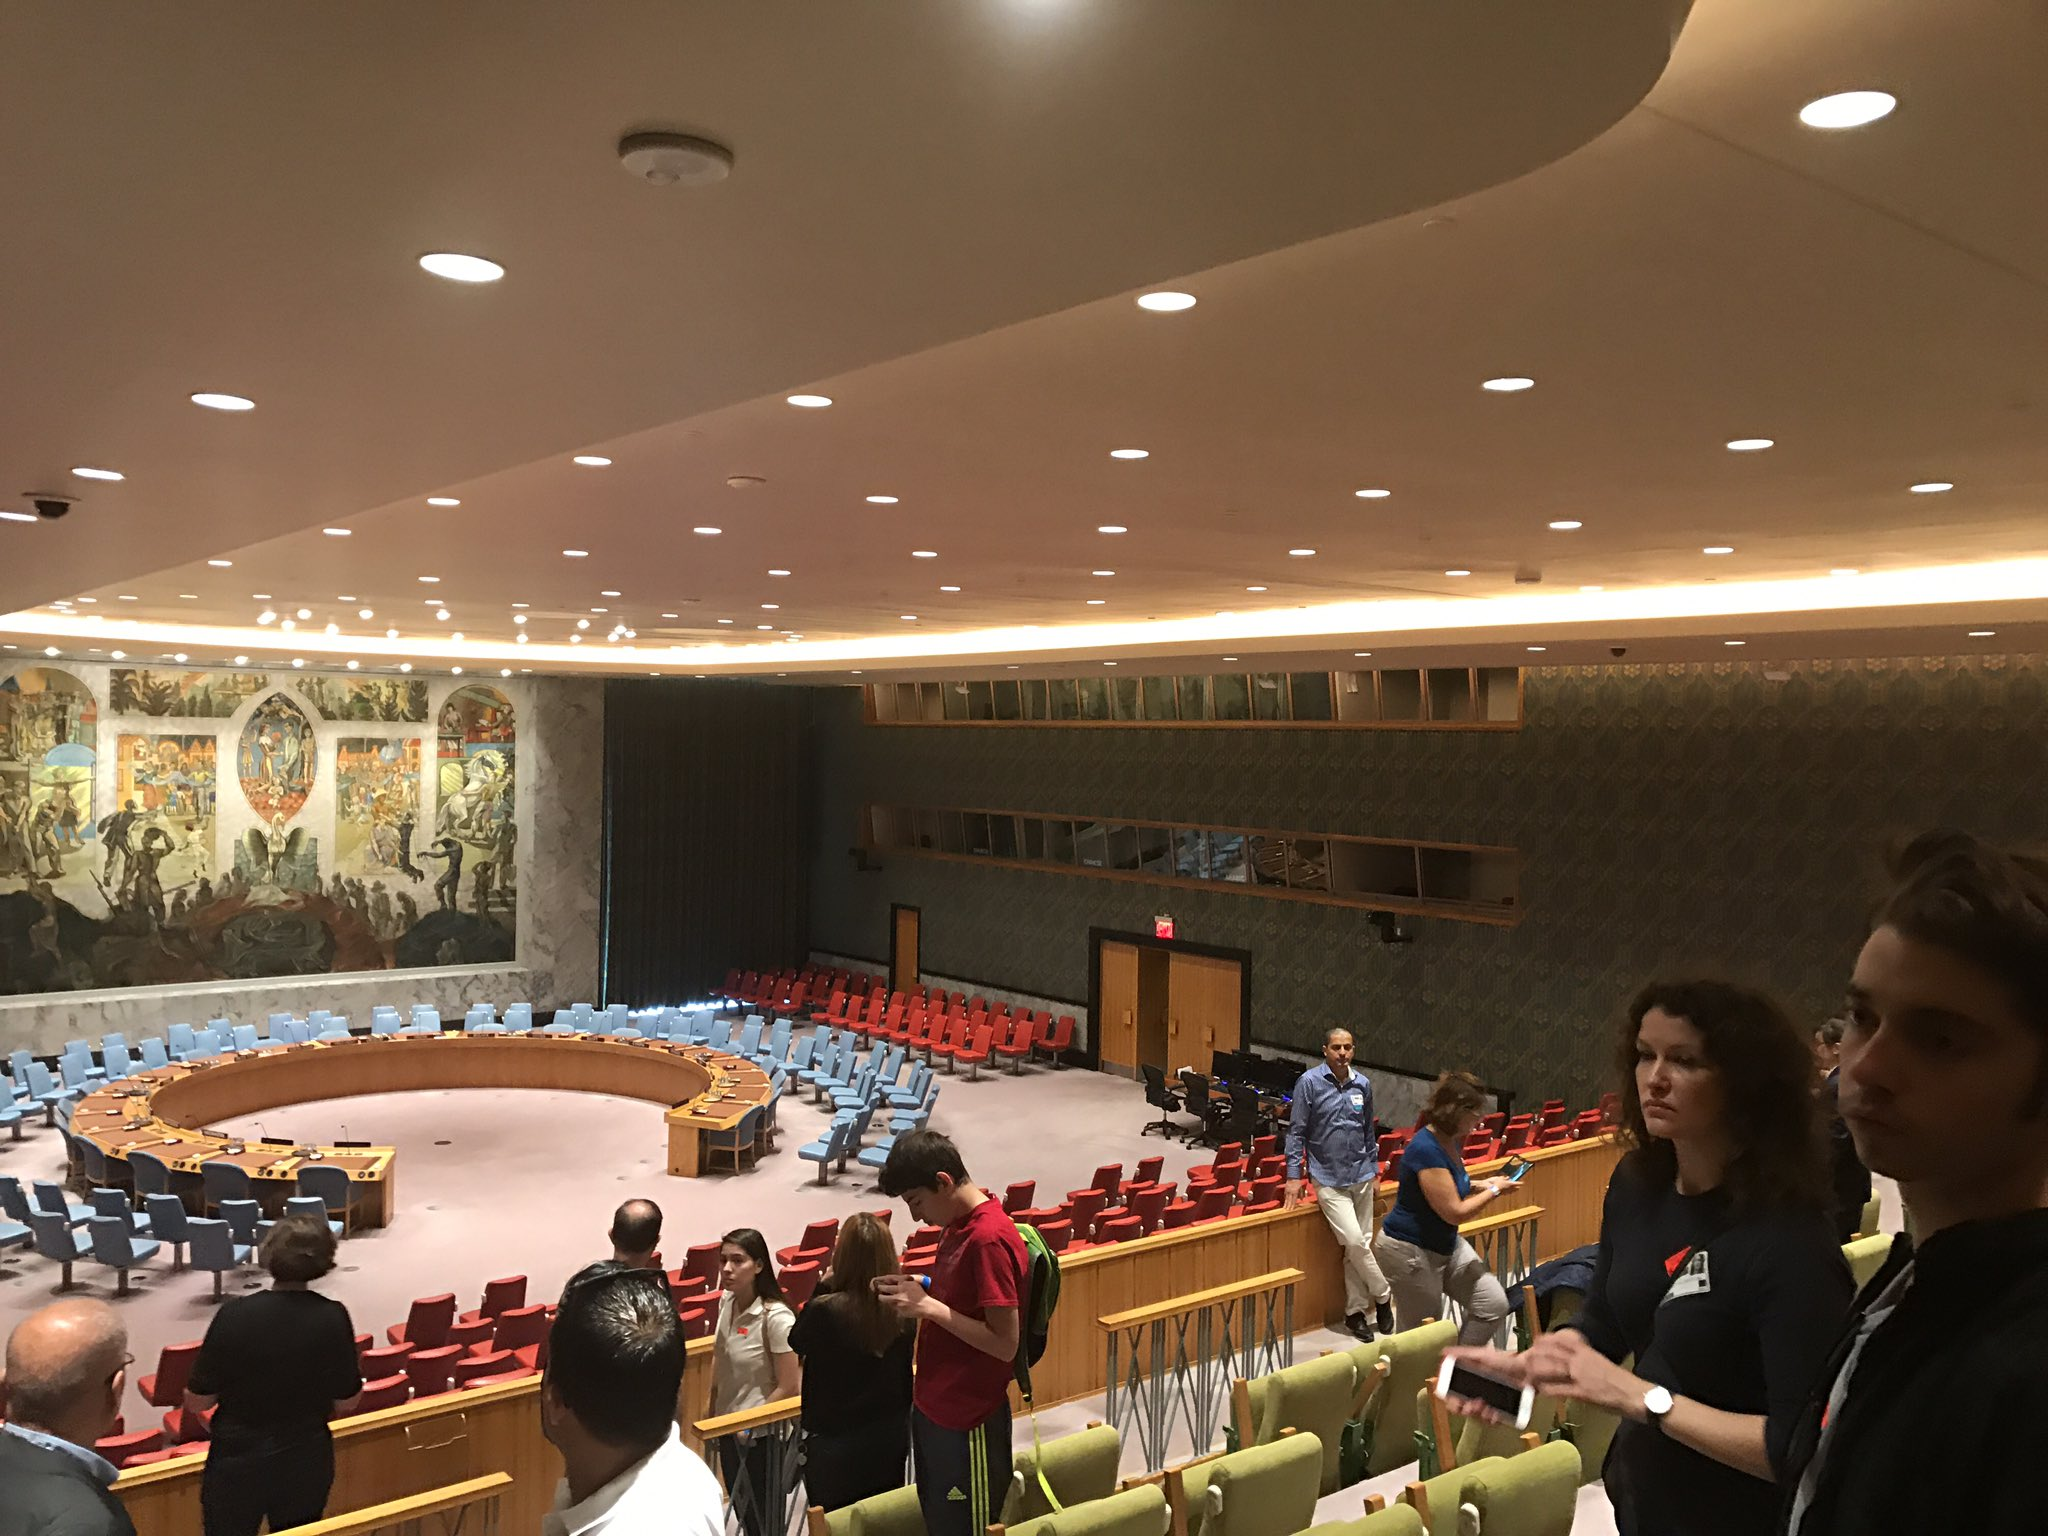 In those windows are where translators stay to give translations to the ear pieces #UnitedNations https://t.co/7Oh2uihVDC